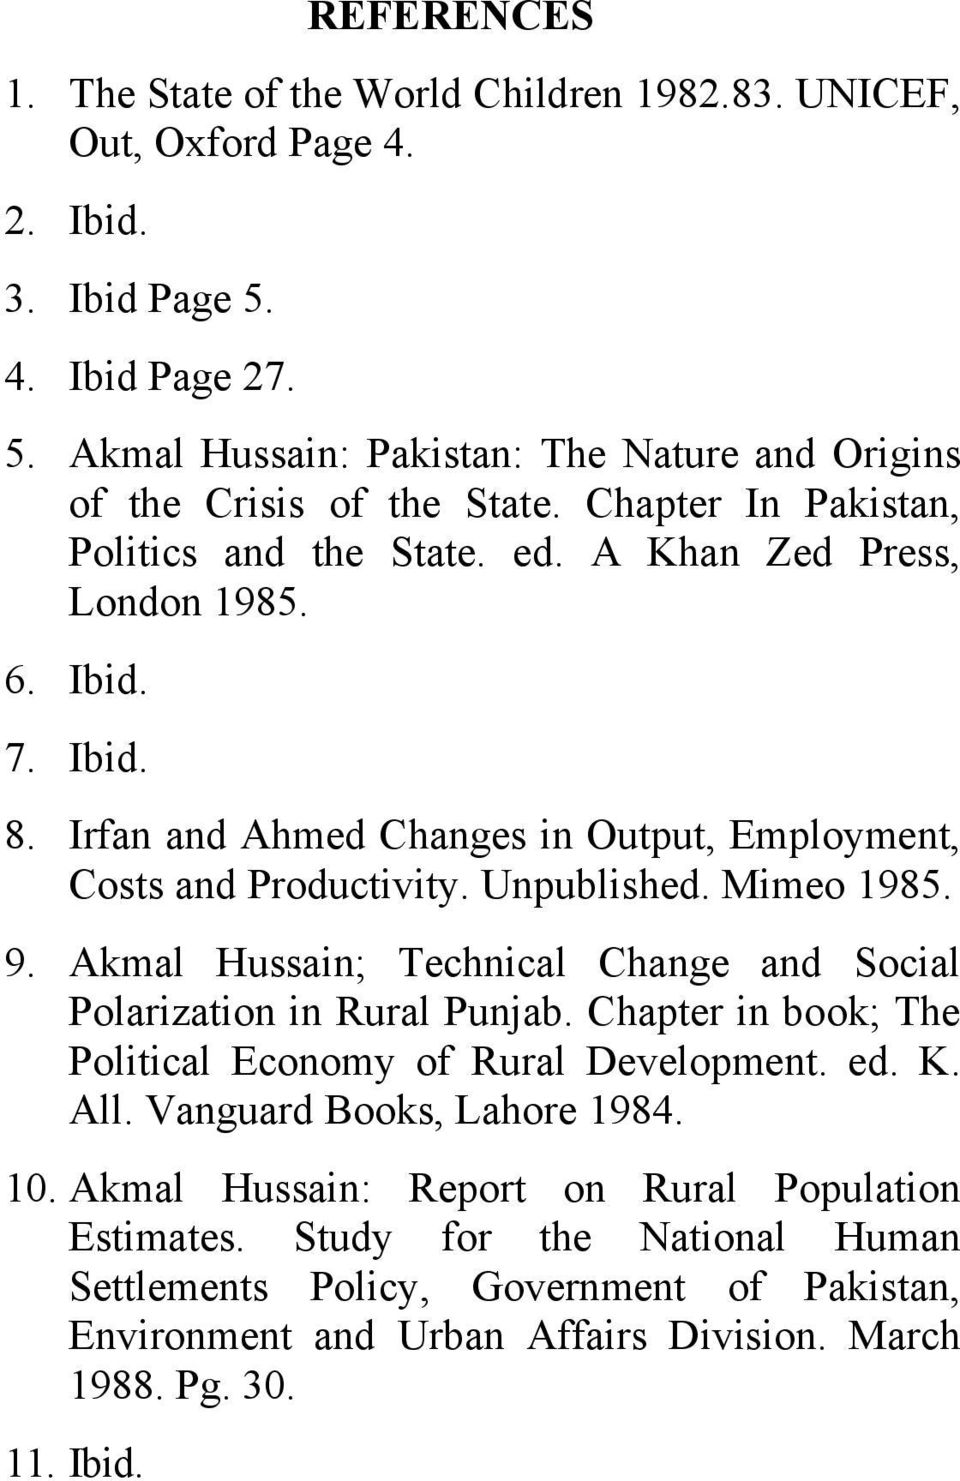 Mimeo 95. 9. Akmal Hussain; Technical Change and Social Polarization in Rural Punjab. Chapter in book; The Political Economy of Rural Development. ed. K. All. Vanguard Books, Lahore 9.